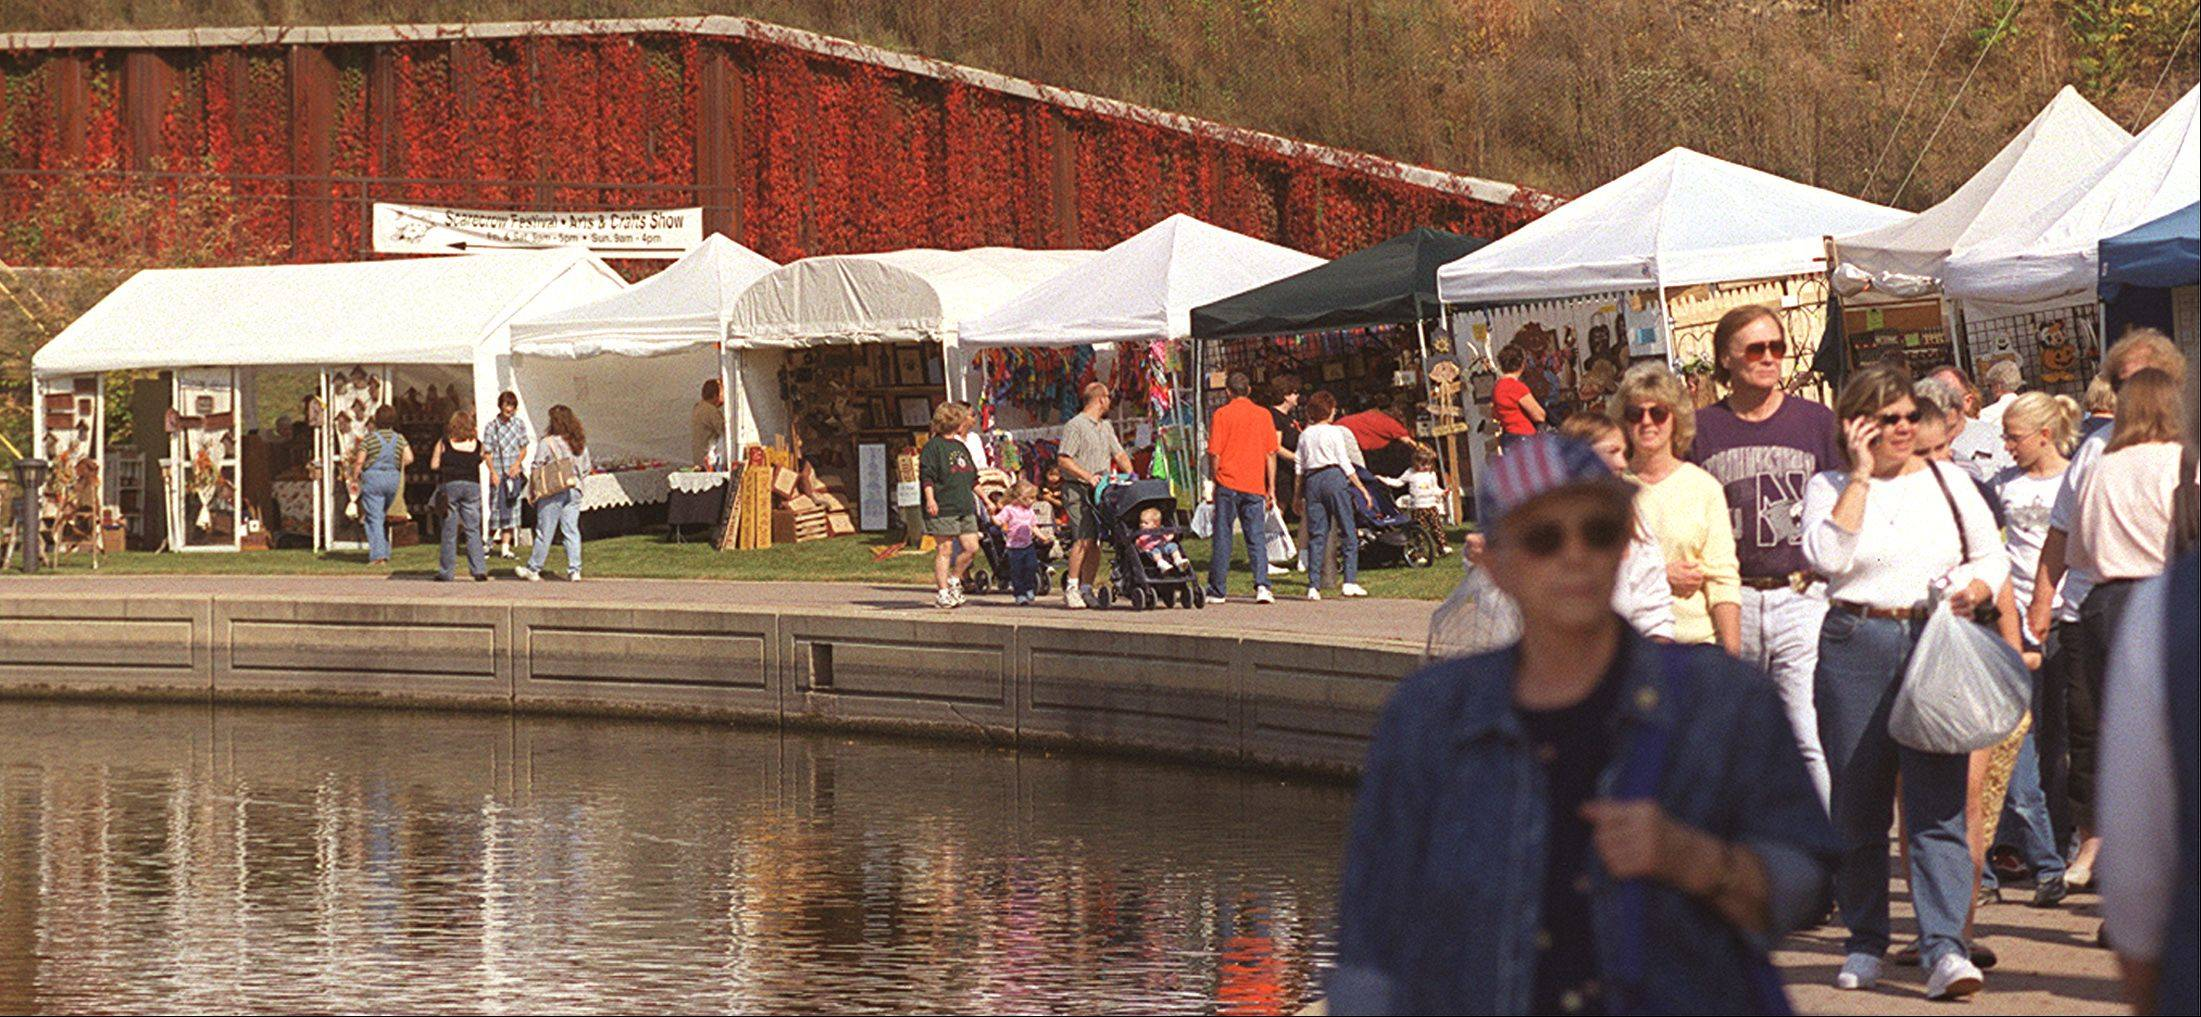 Spotlight on seasonal crafts at St. Charles Scarecrow Fest